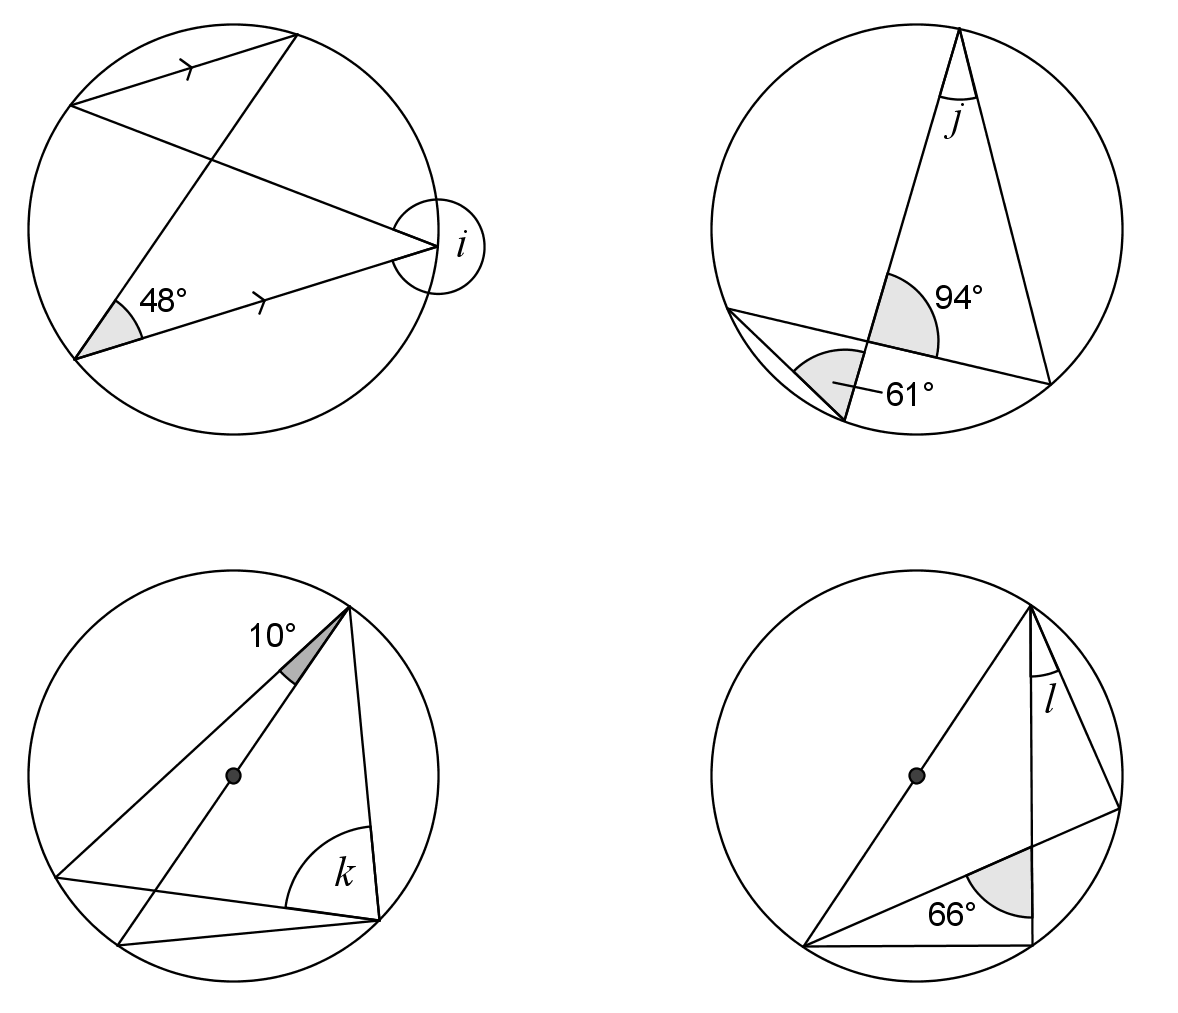 Worksheet On Cyclic Quadrilaterals